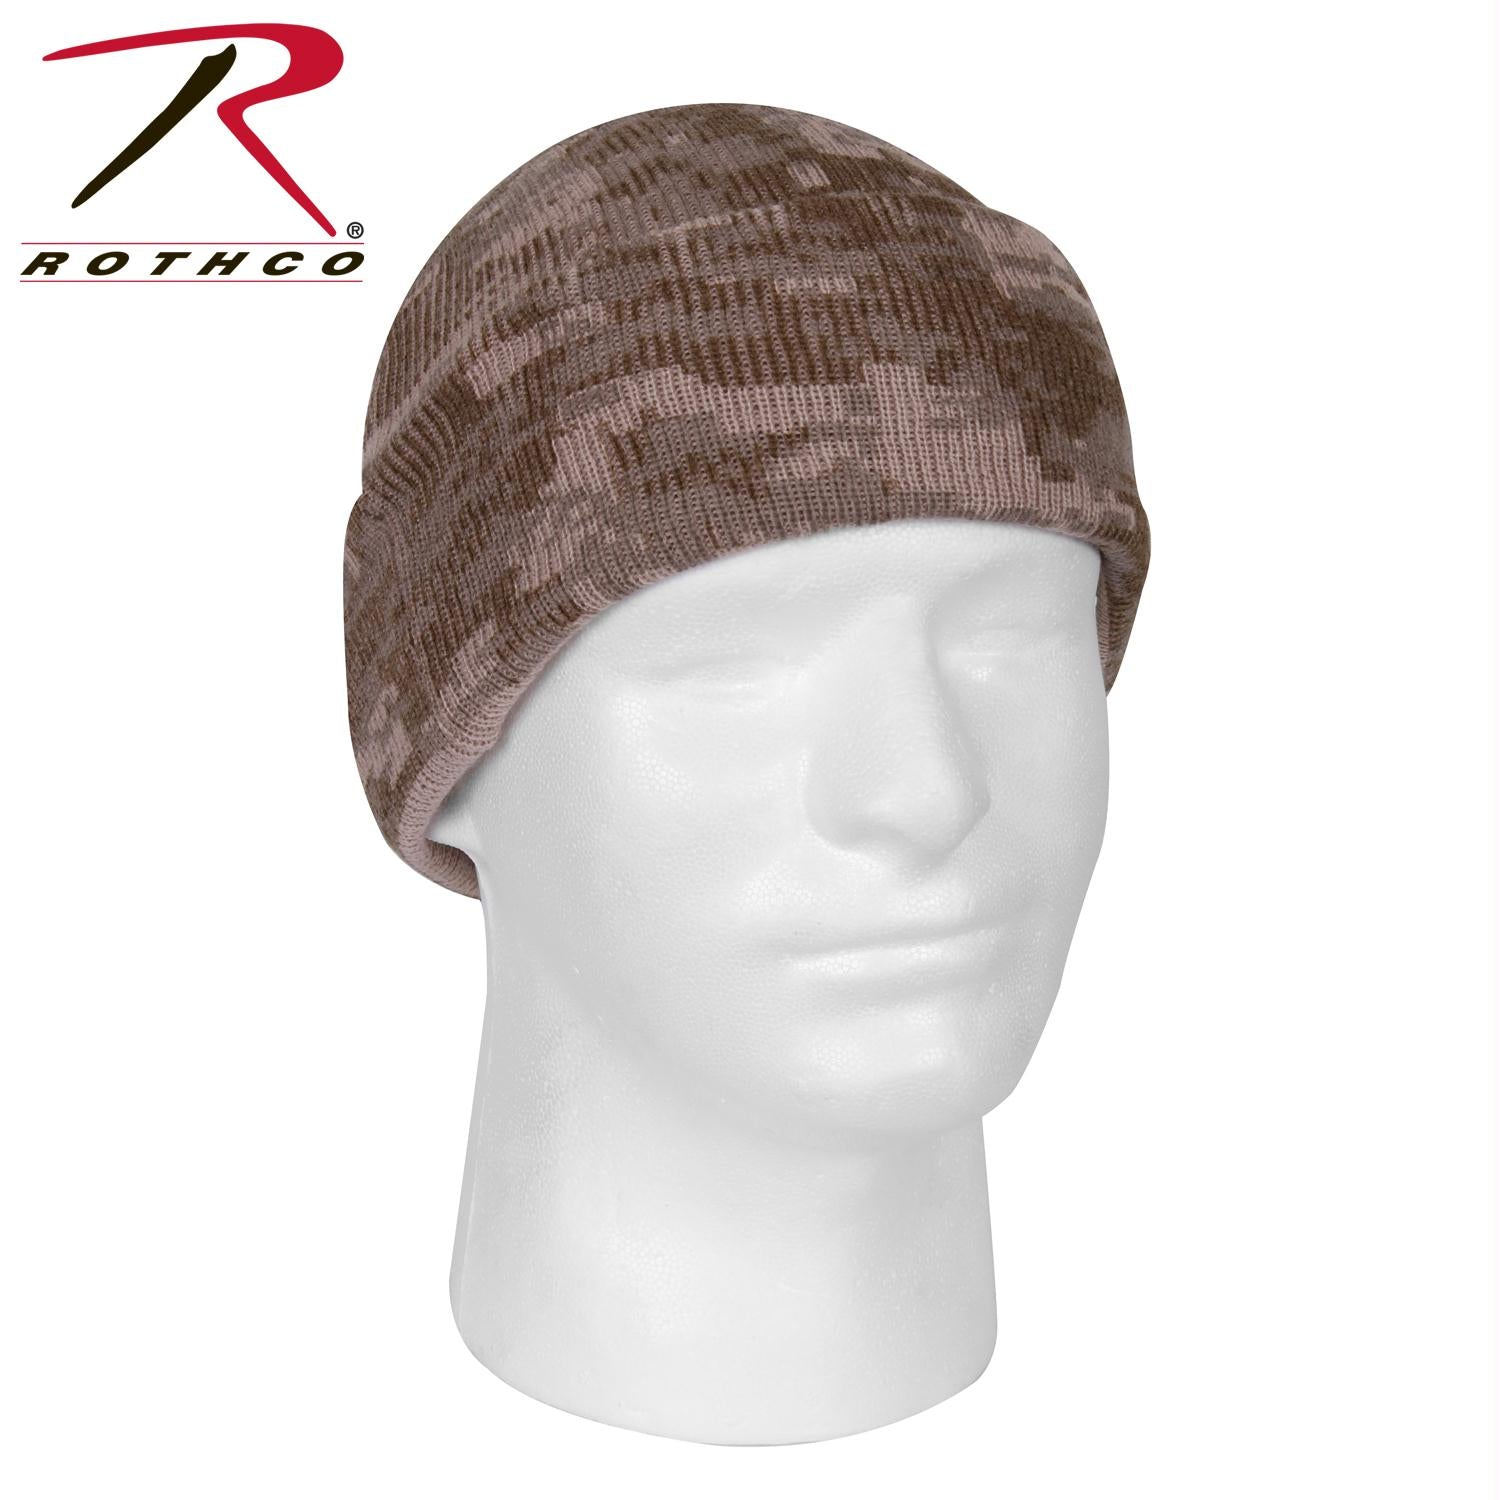 Rothco Deluxe Camo Watch Cap - Desert Digital Camo